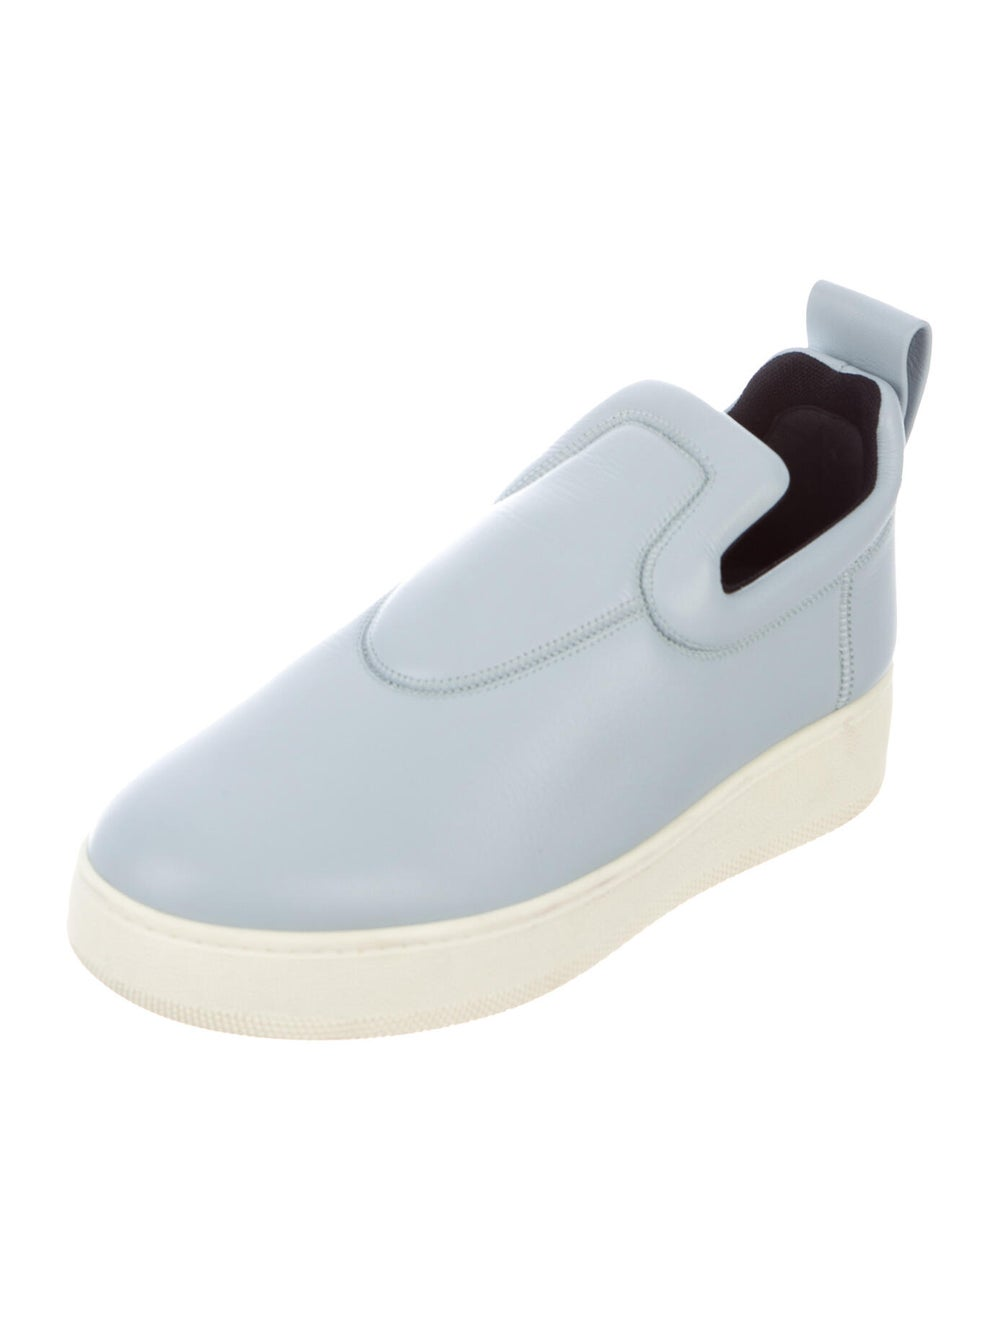 Celine Leather Sneakers Blue - image 2